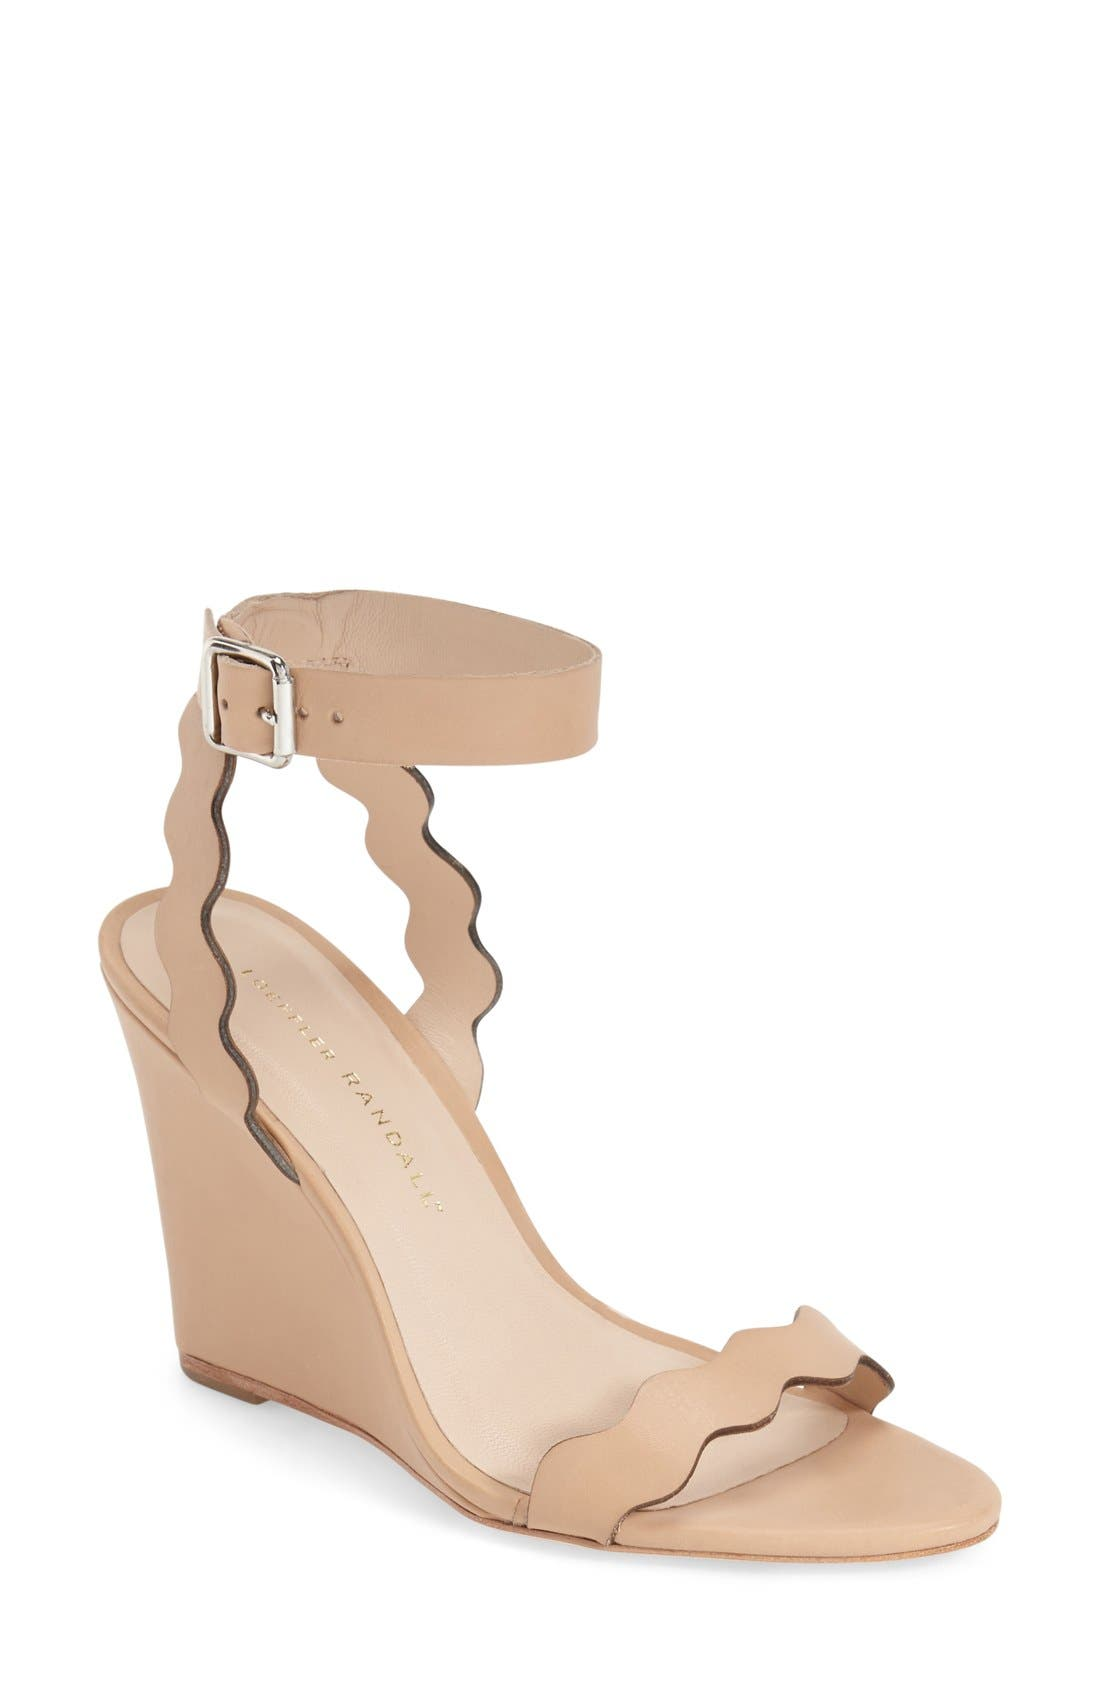 Loeffler Randall 'Piper' Wedge Sandal (Women)